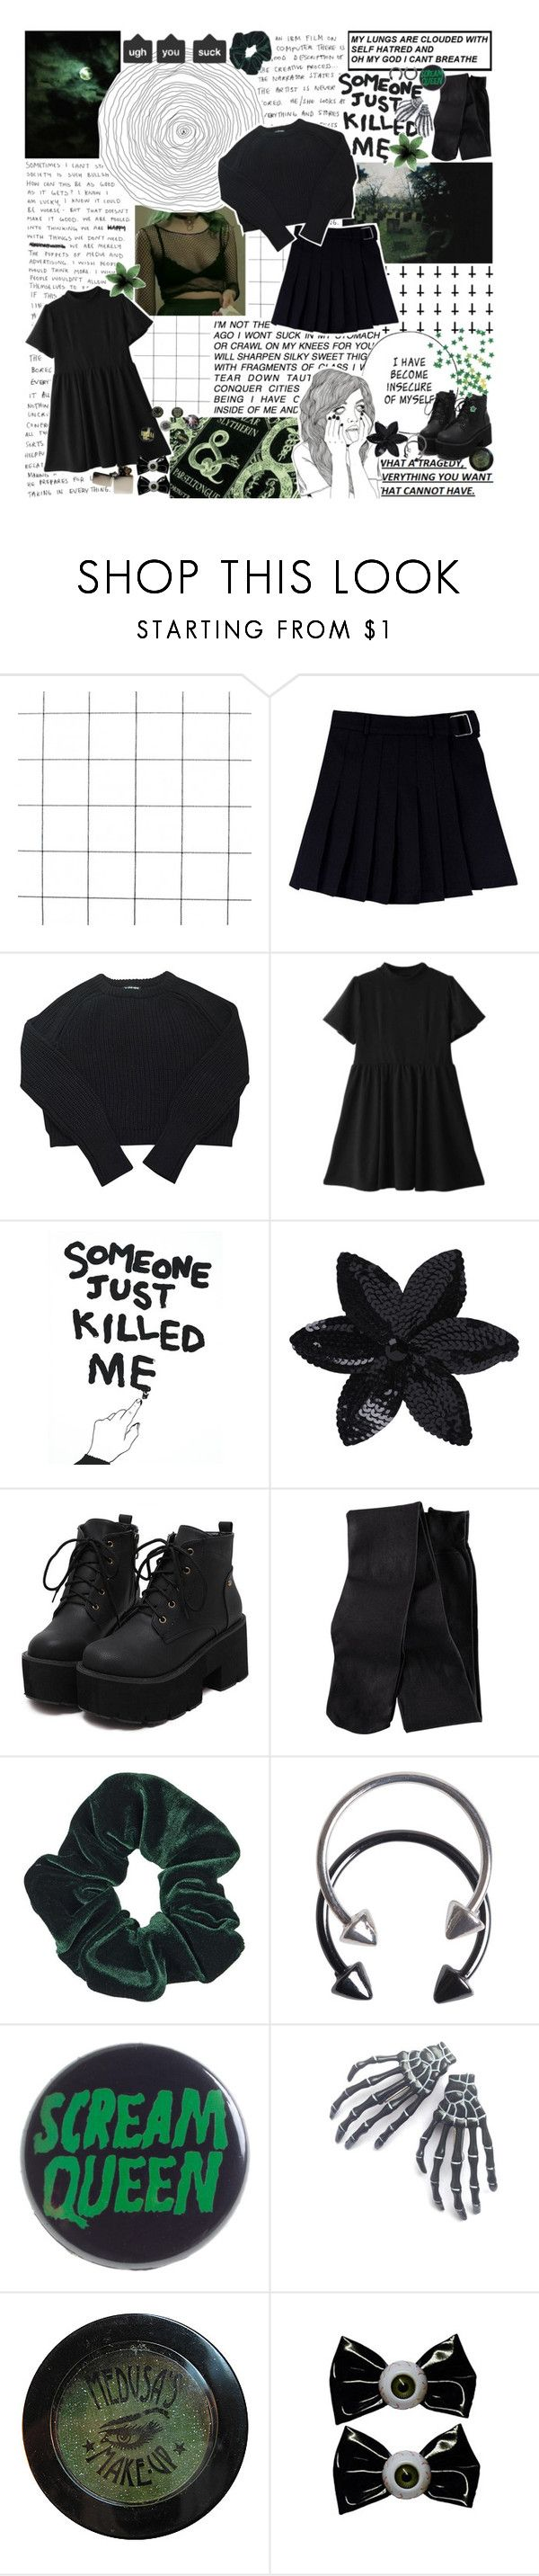 """i play russian roulette everyday, a man's sport, with a bullet called life;"" by maggotpunk ❤ liked on Polyvore featuring American Apparel, House Of Voltaire, ASOS, H&M, Topshop, Pieces, Sourpuss, Kreepsville 666 and Zippo"